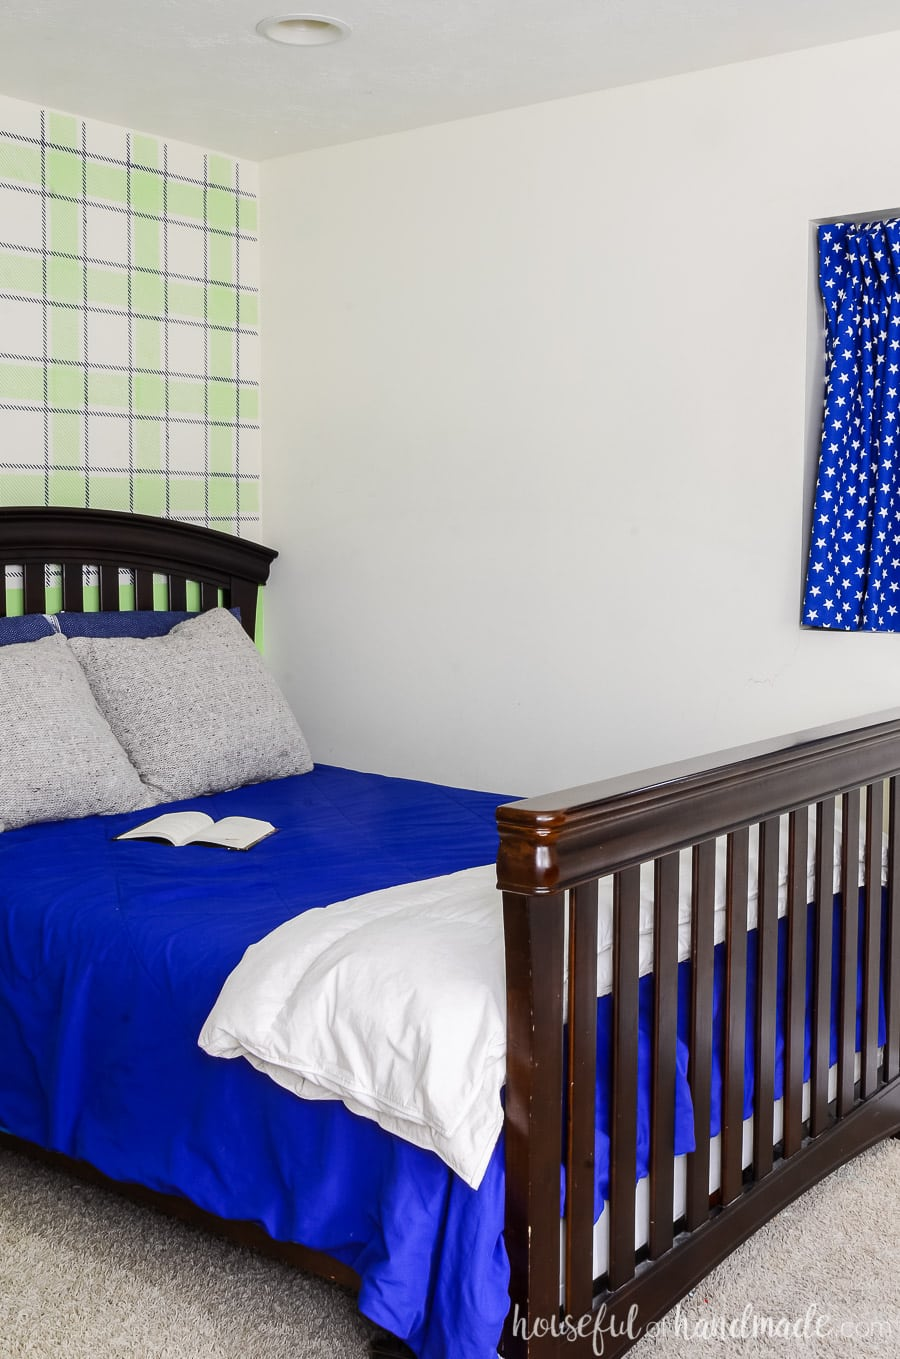 Dark wood bed with blue comforter and knit pillows. Focal wall behind bed is painted blue & green plaid with a wall stencil.